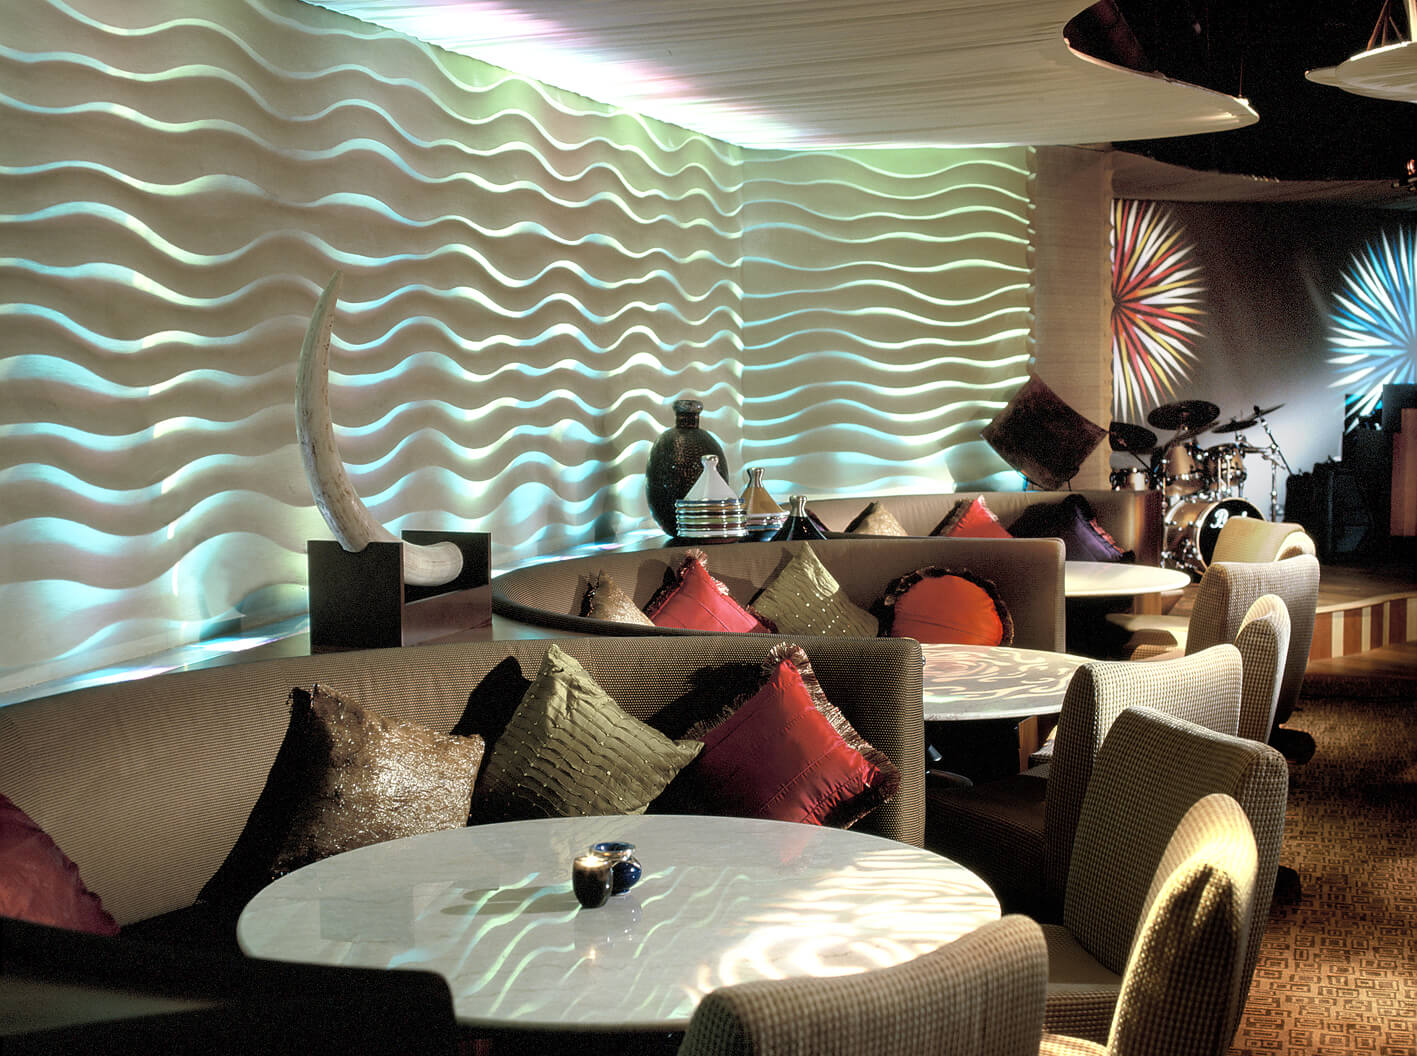 Live Music Lounge Interiors- Commercial Design Portfolio - InteriorSense